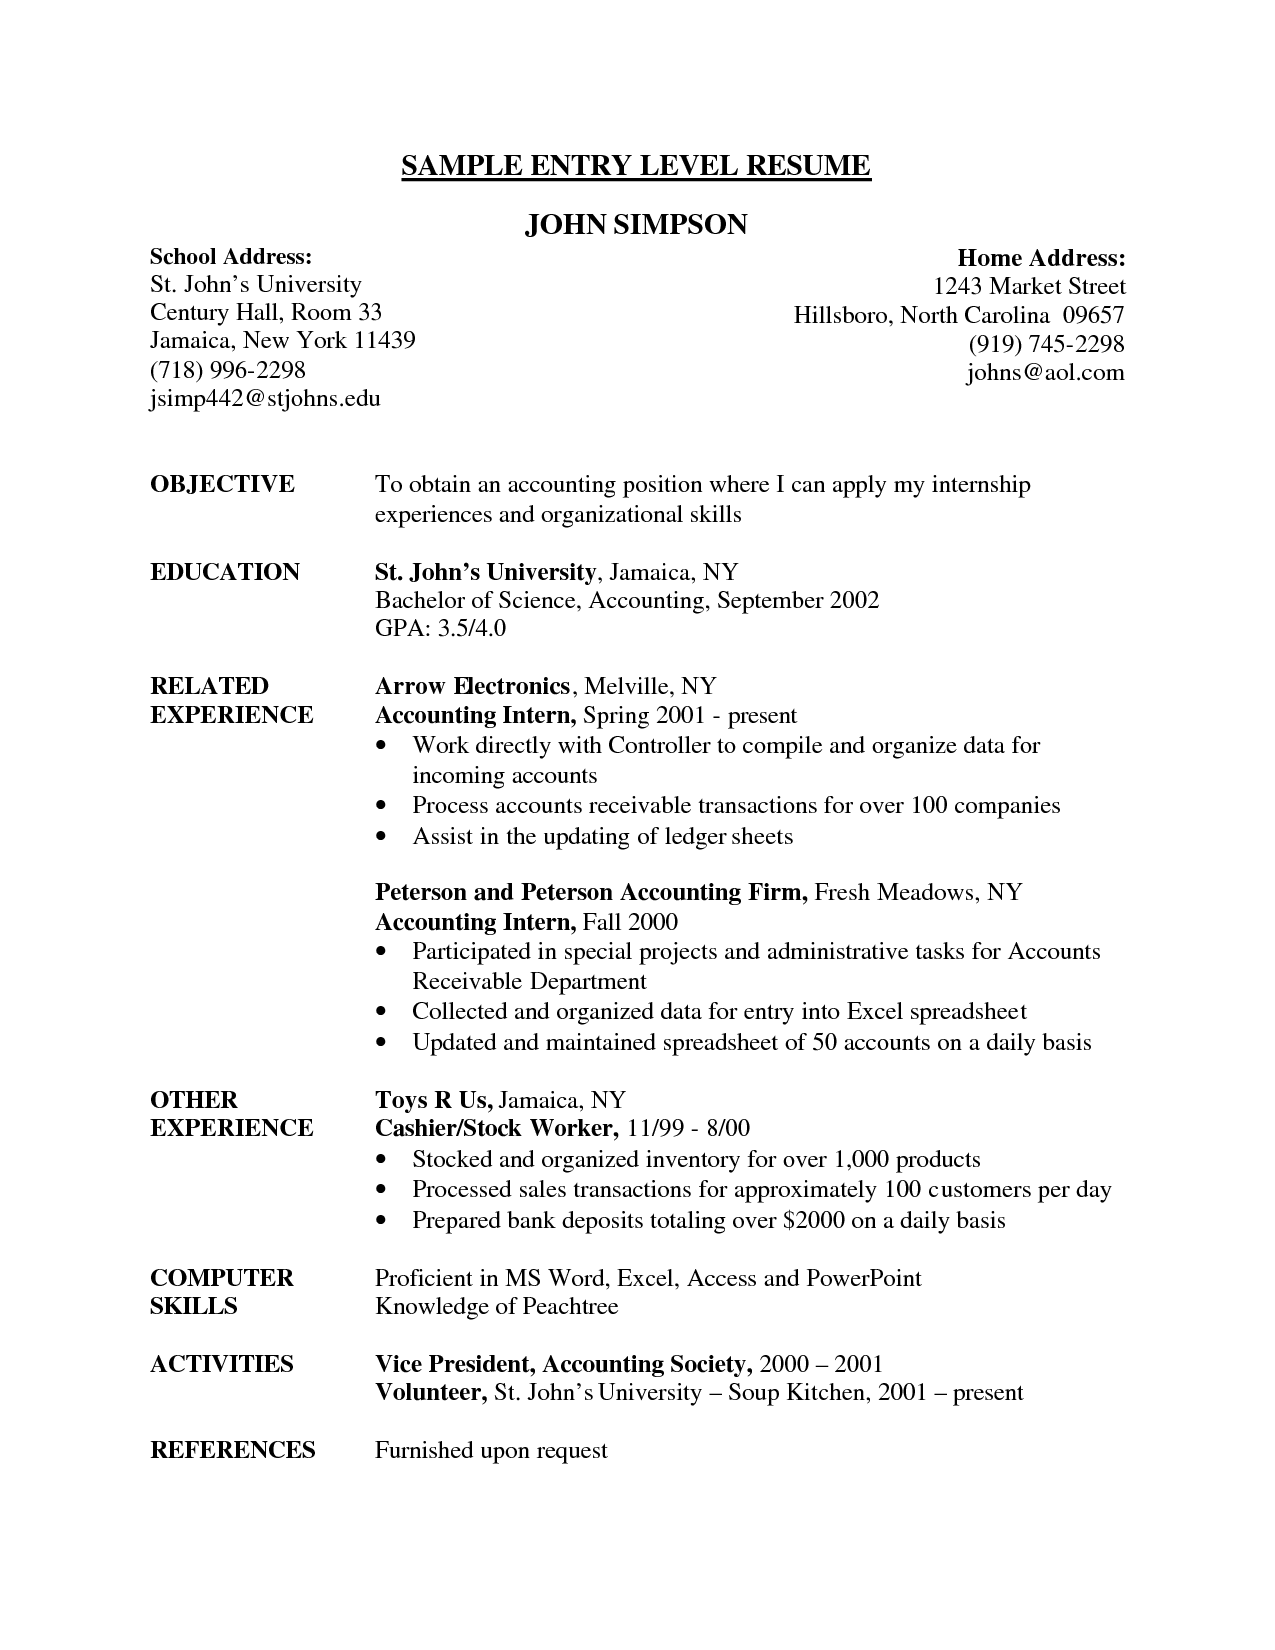 Example Of Resume Profile Entry Level - http://www.resumecareer ...